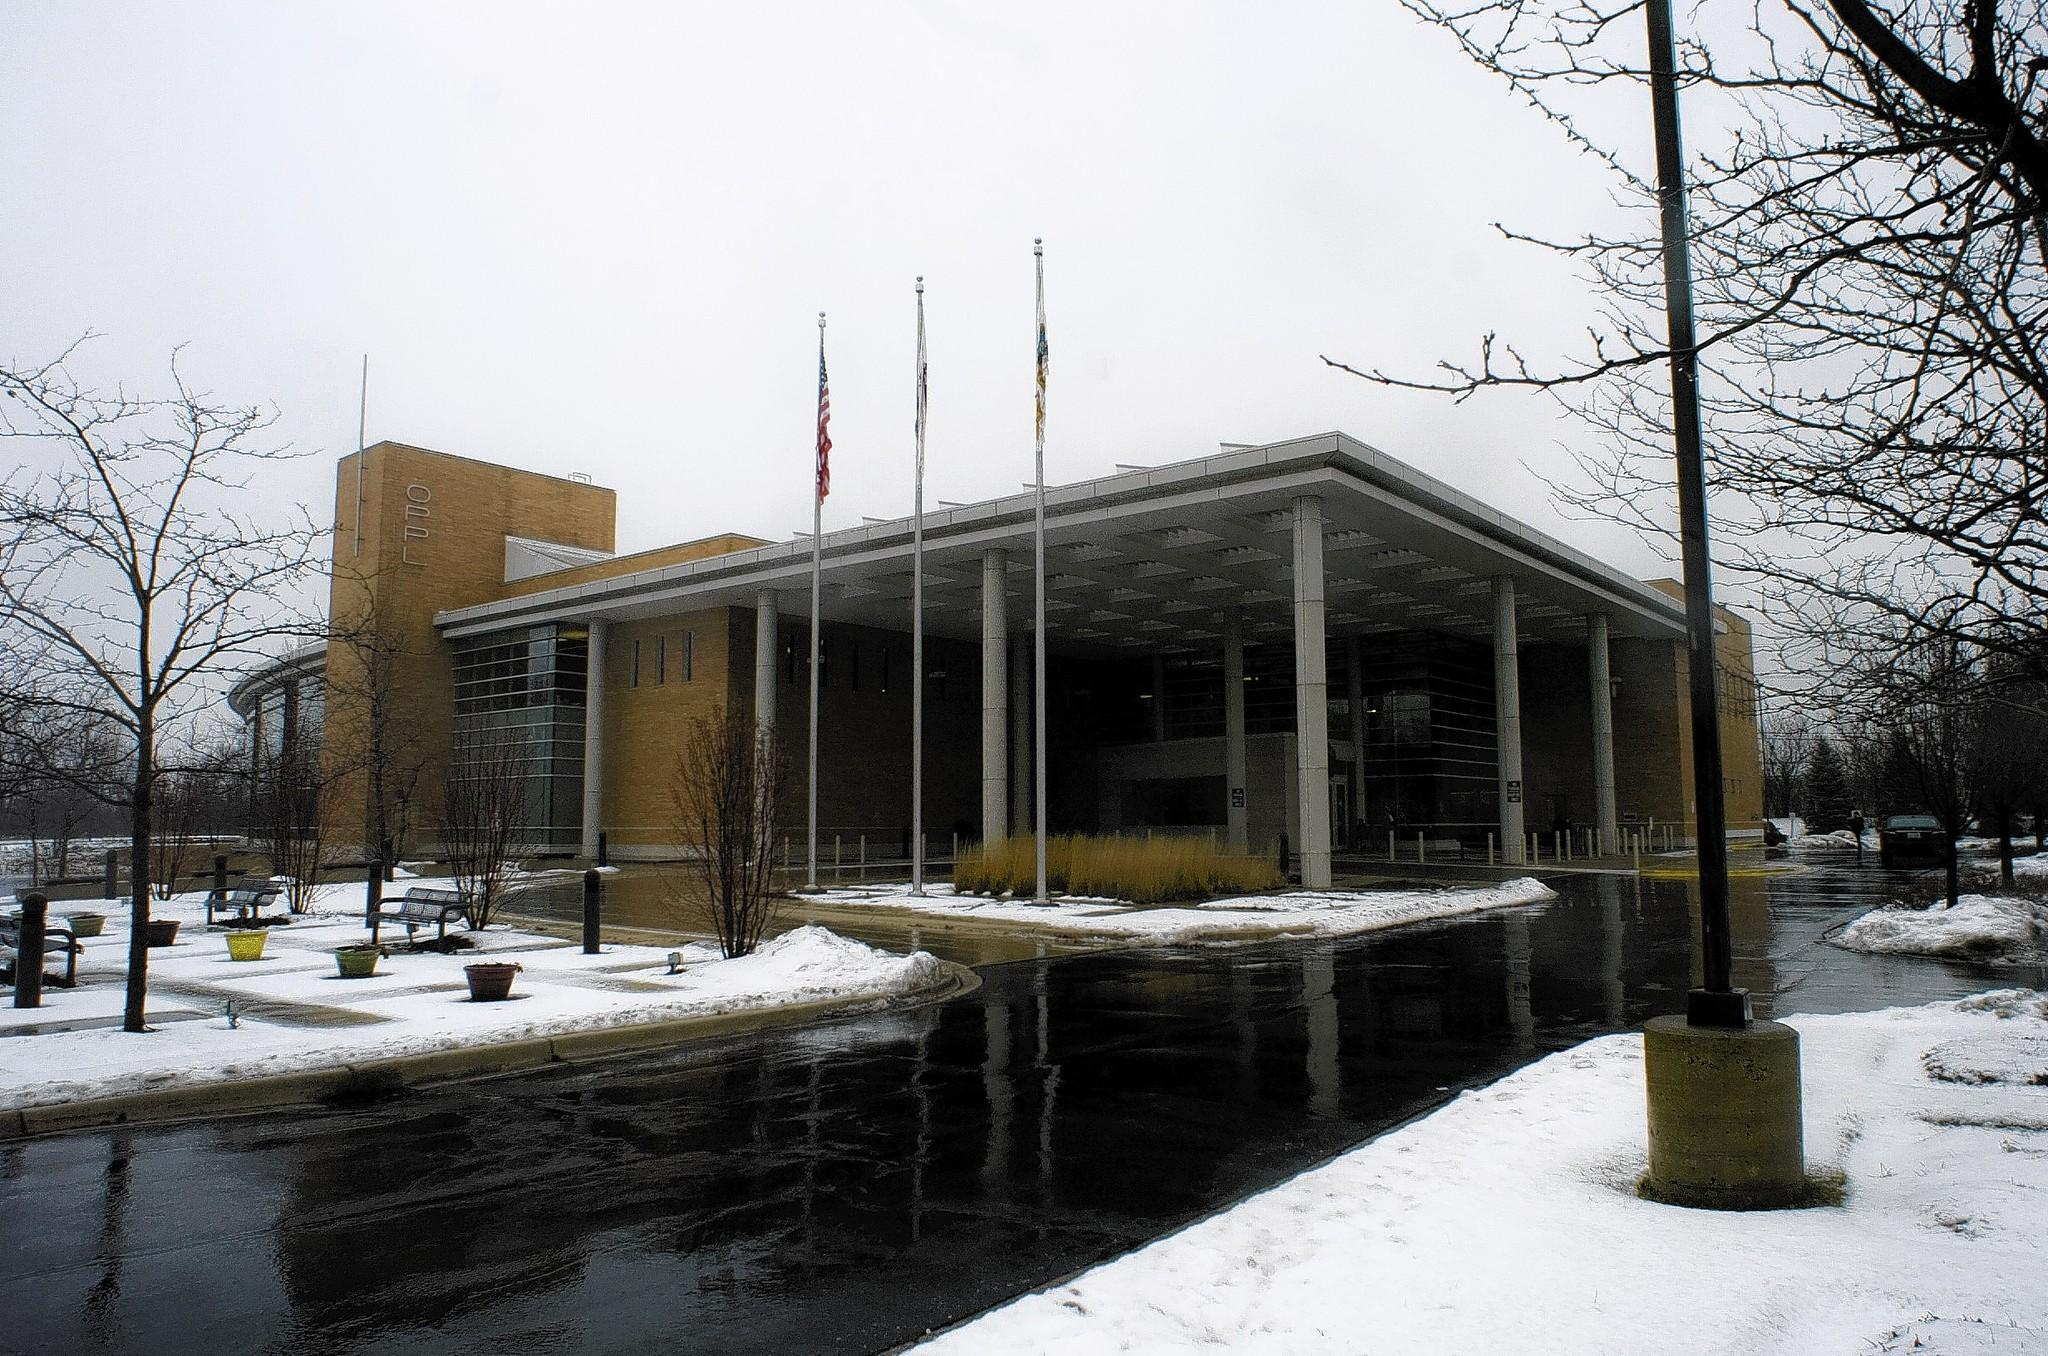 The Orland Park Public Library is making some changes.